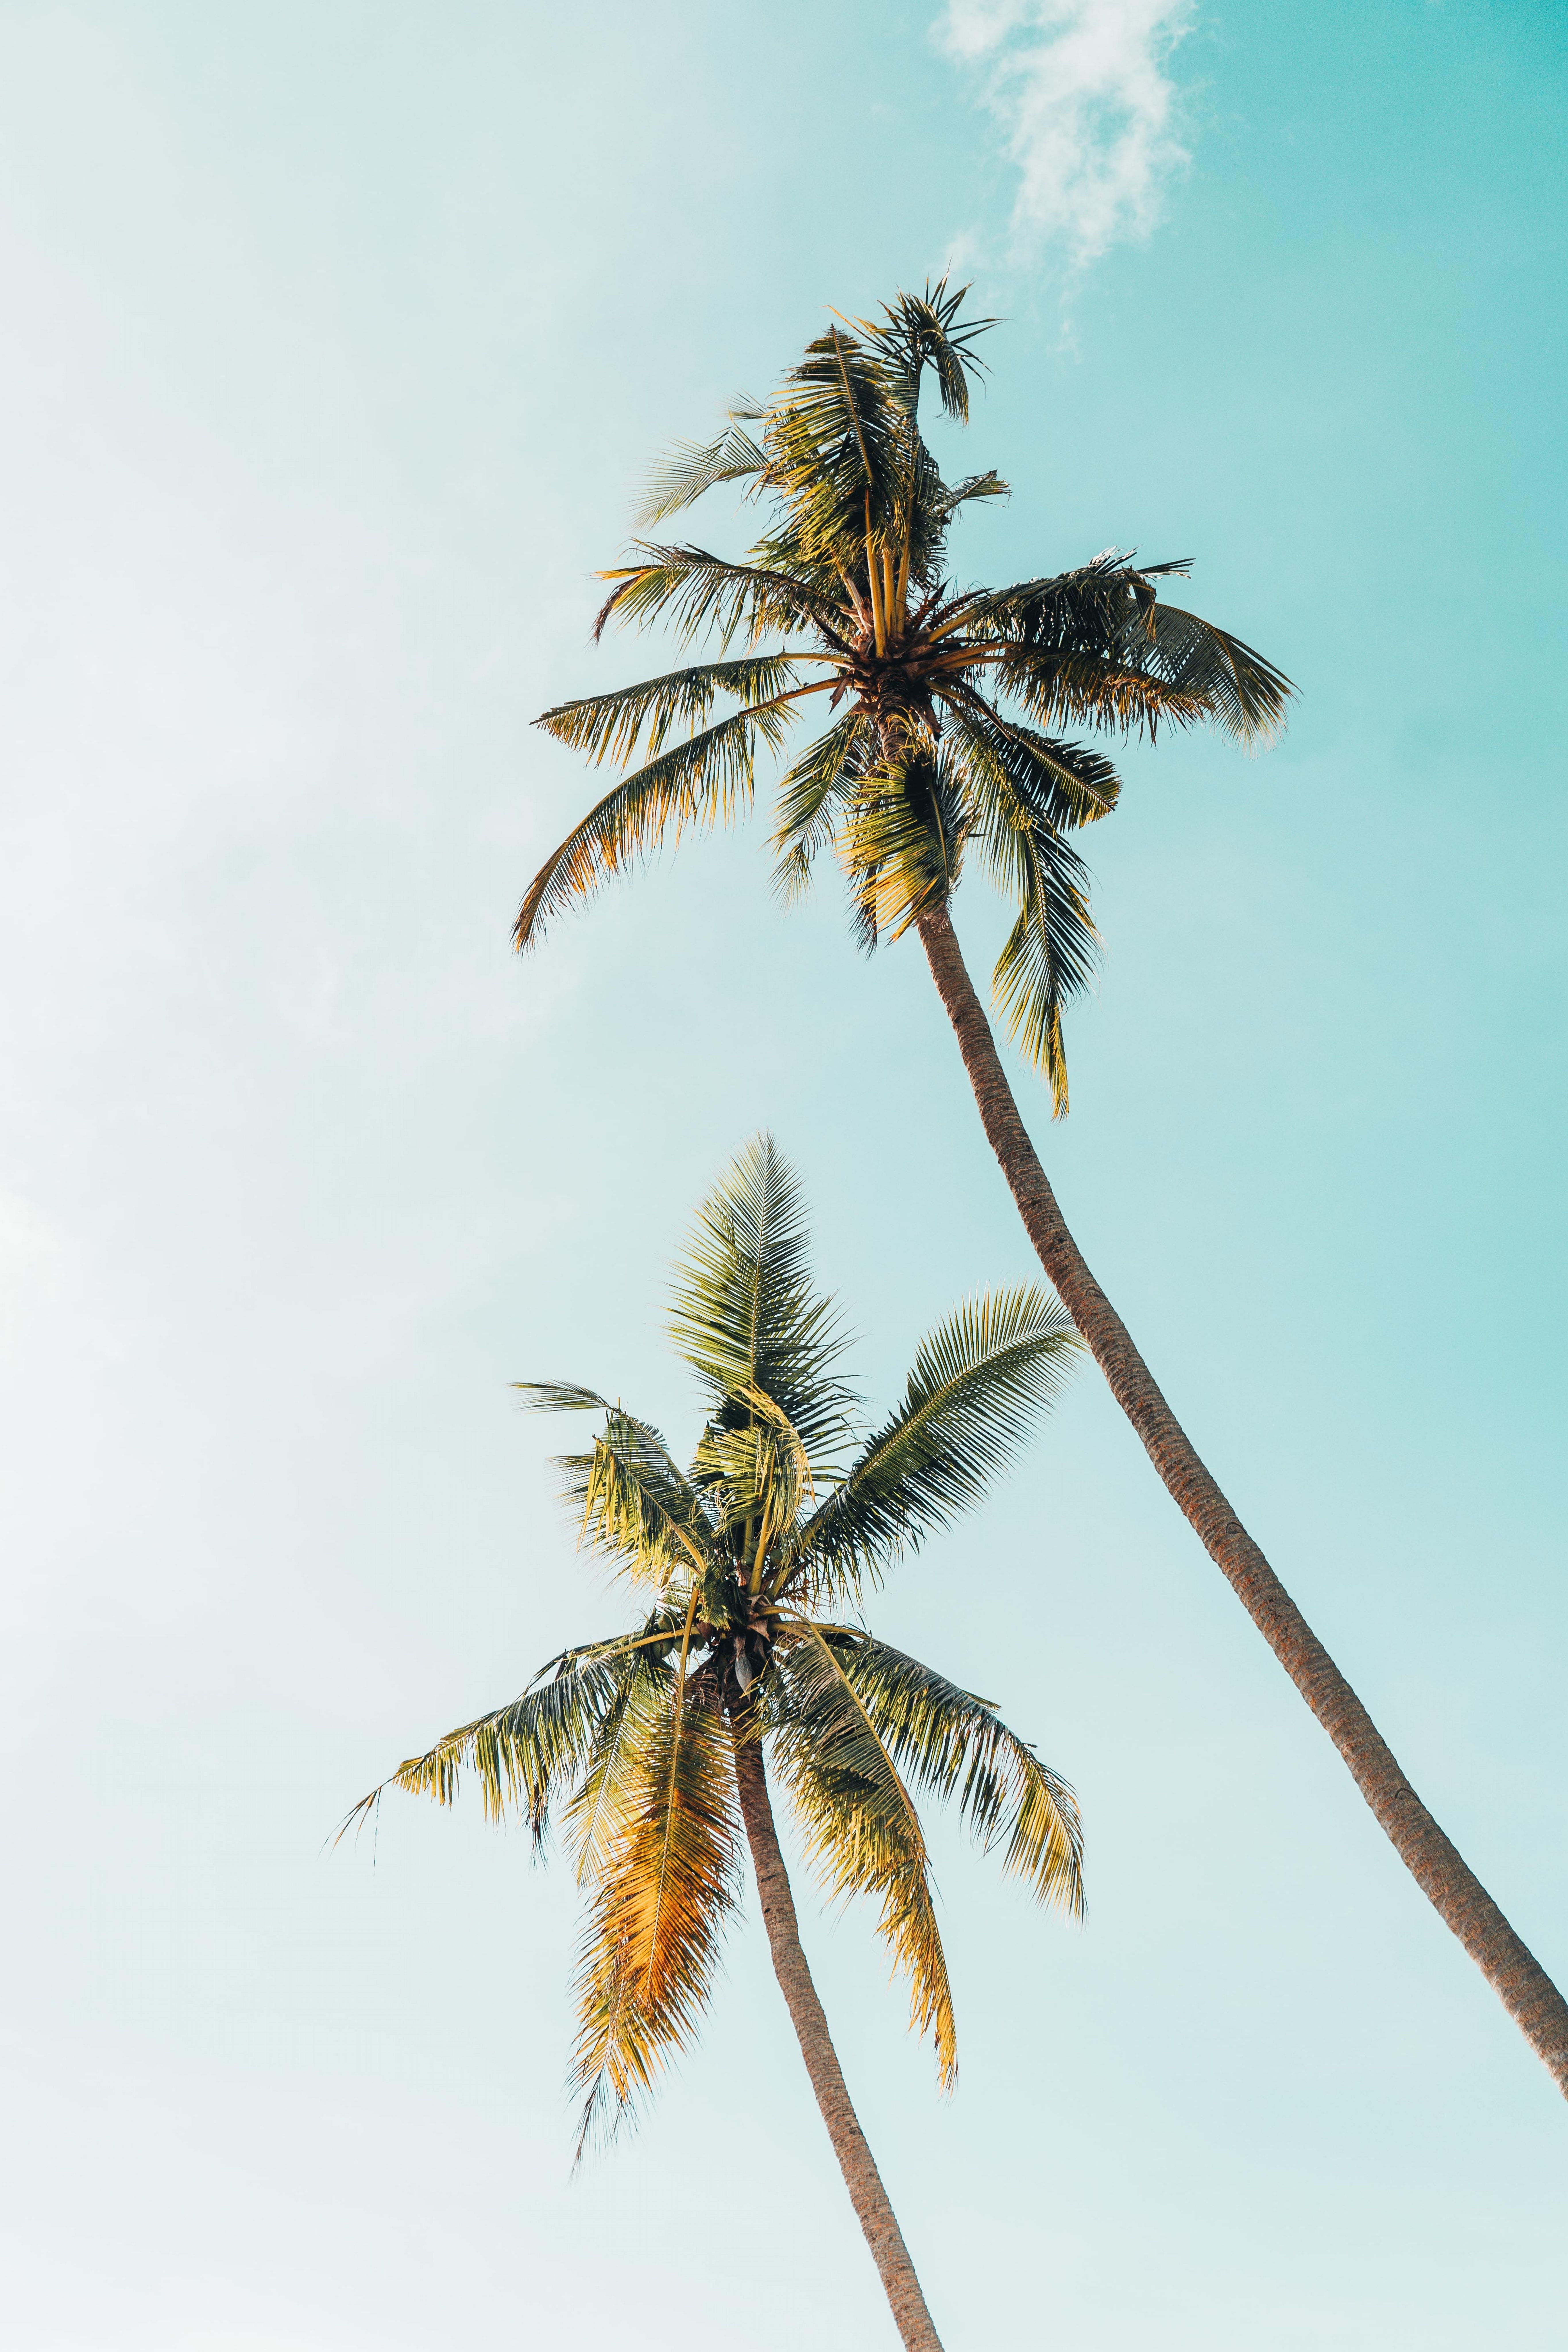 Tree Palm Tree Sun And Sky Hd Photo By James Connolly Palm Tree Pictures Palm Tree Iphone Wallpaper Palm Trees Wallpaper Hd wallpaper summerpalm tree sky sun